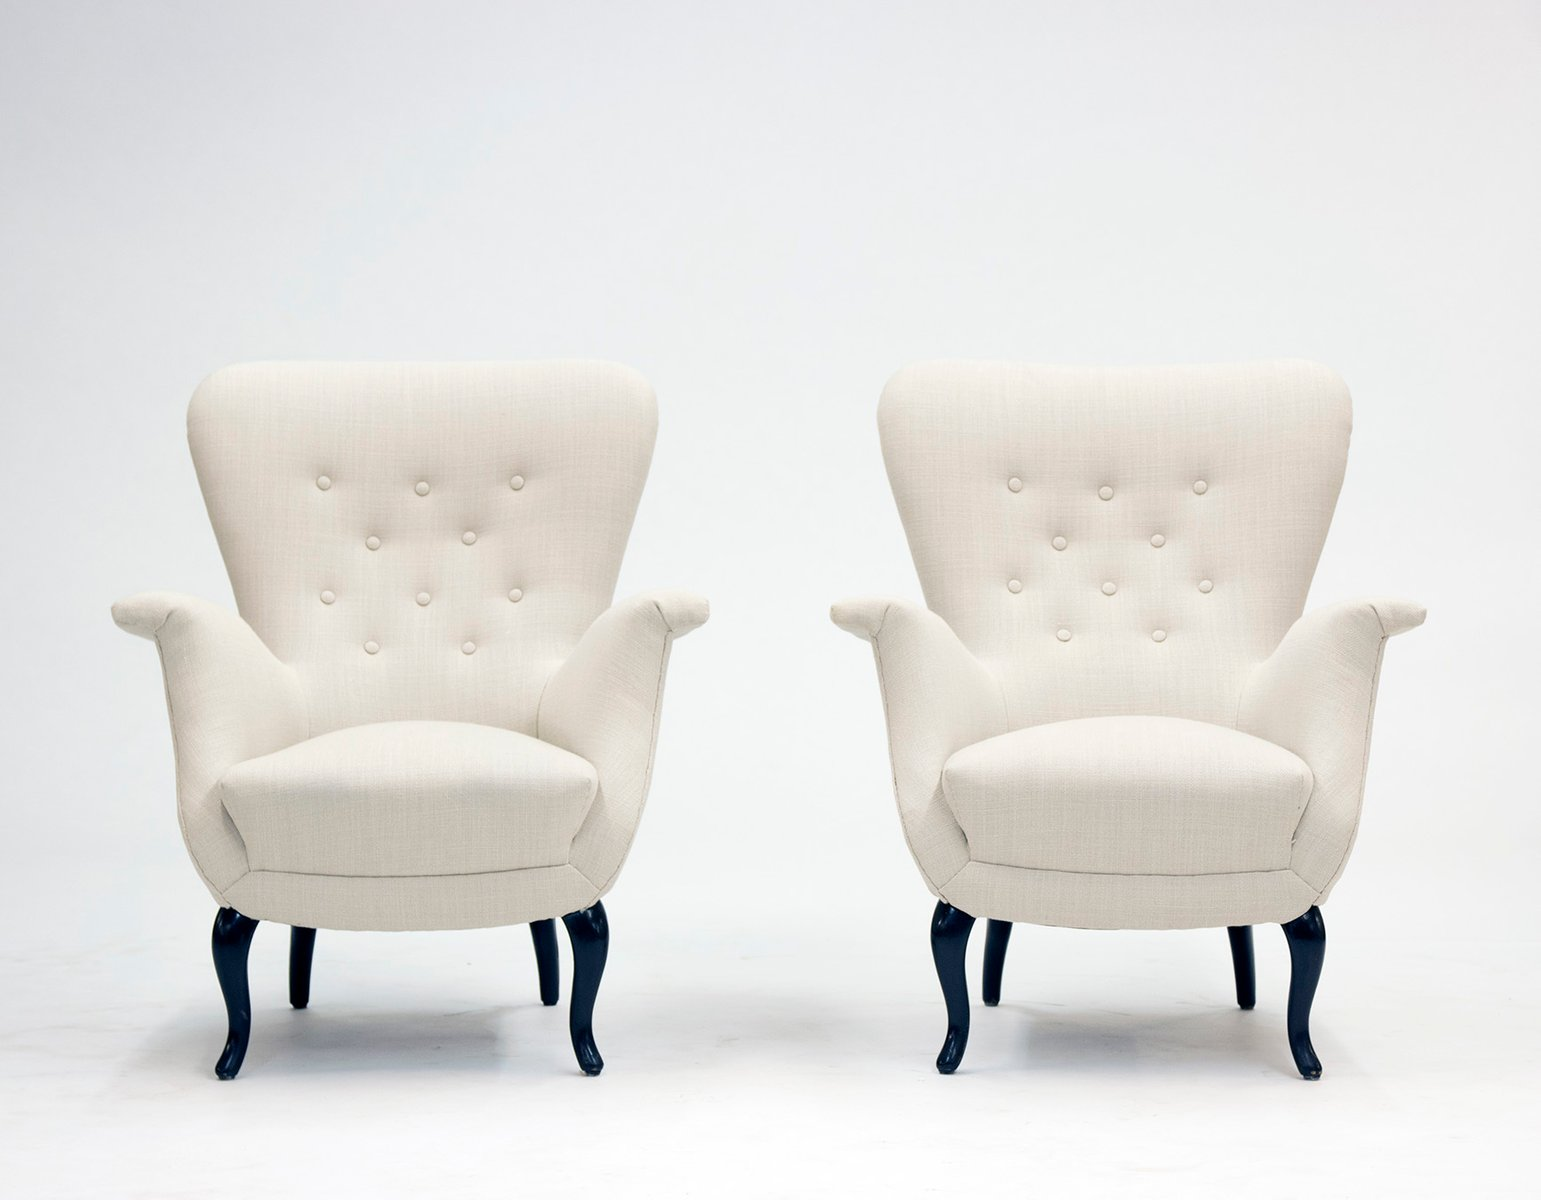 White Club Chair White Lounge Chairs From S M Wincrantz 1950s Set Of 2